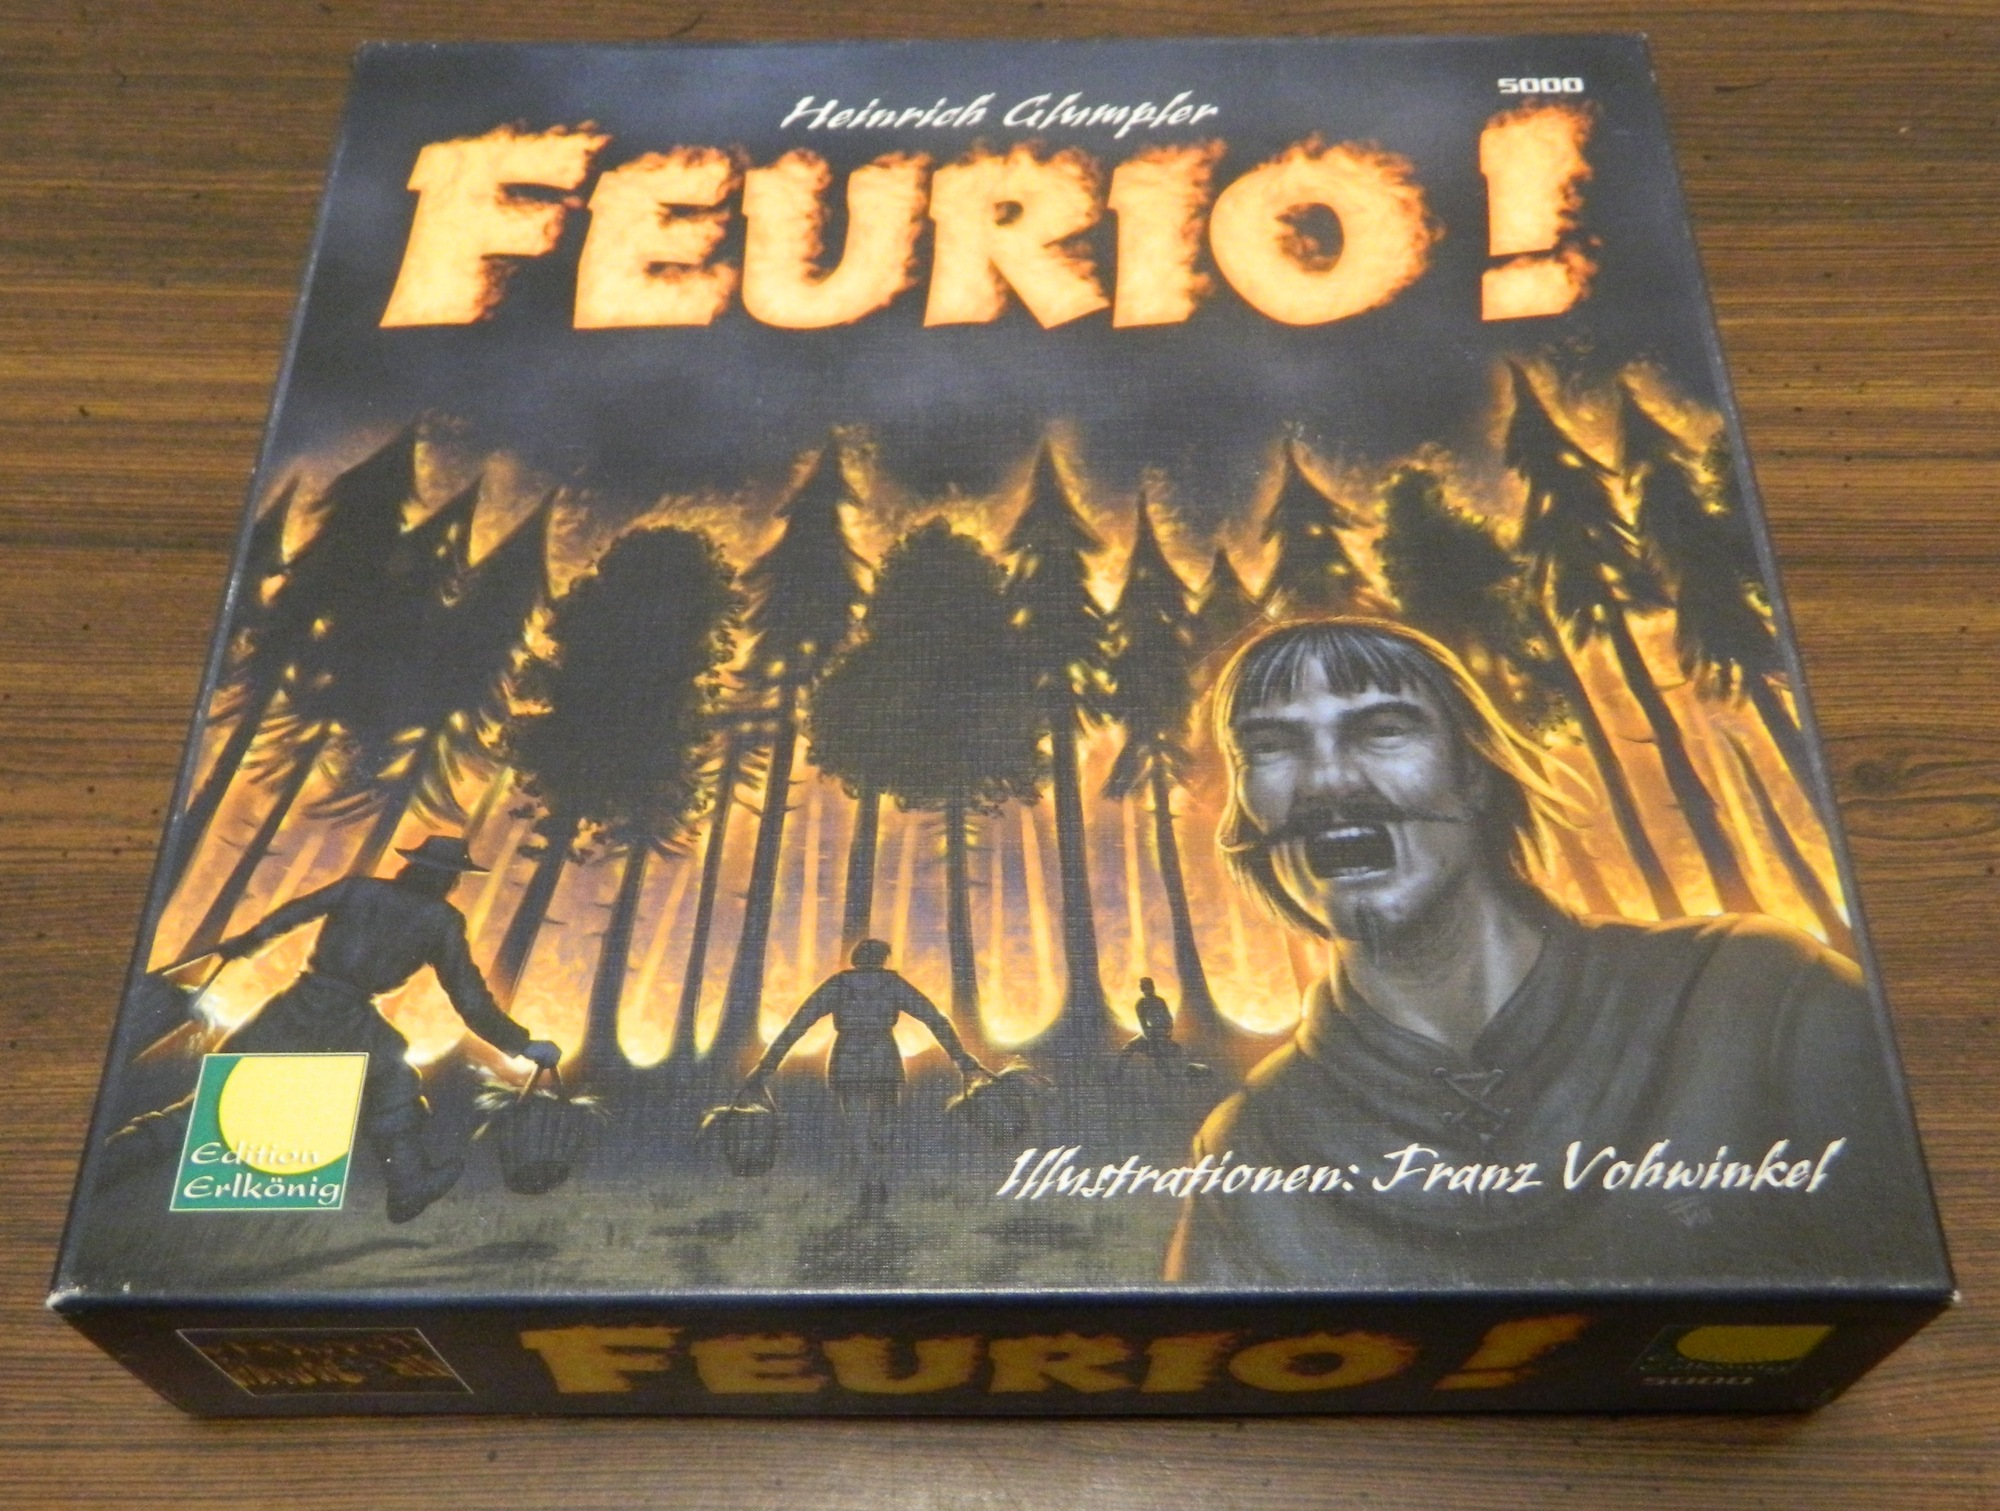 Box for Feurio